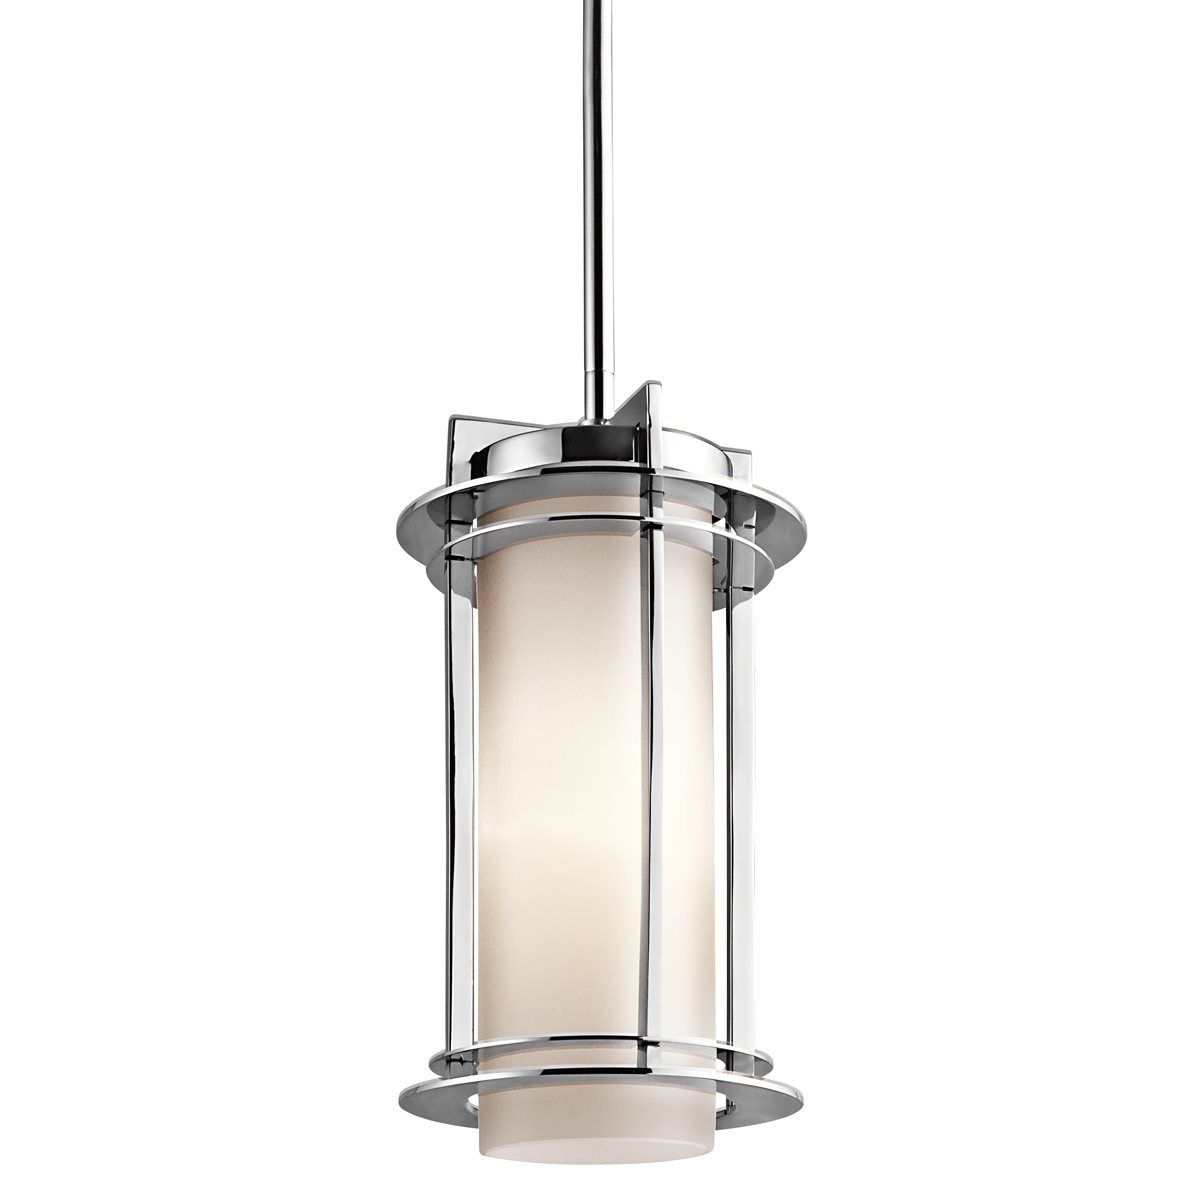 Inspiration about Pendant Lighting Ideas. Modern Outdoor Pendant Lighting Fixtures Intended For Kichler Outdoor Ceiling Lights (#2 of 15)